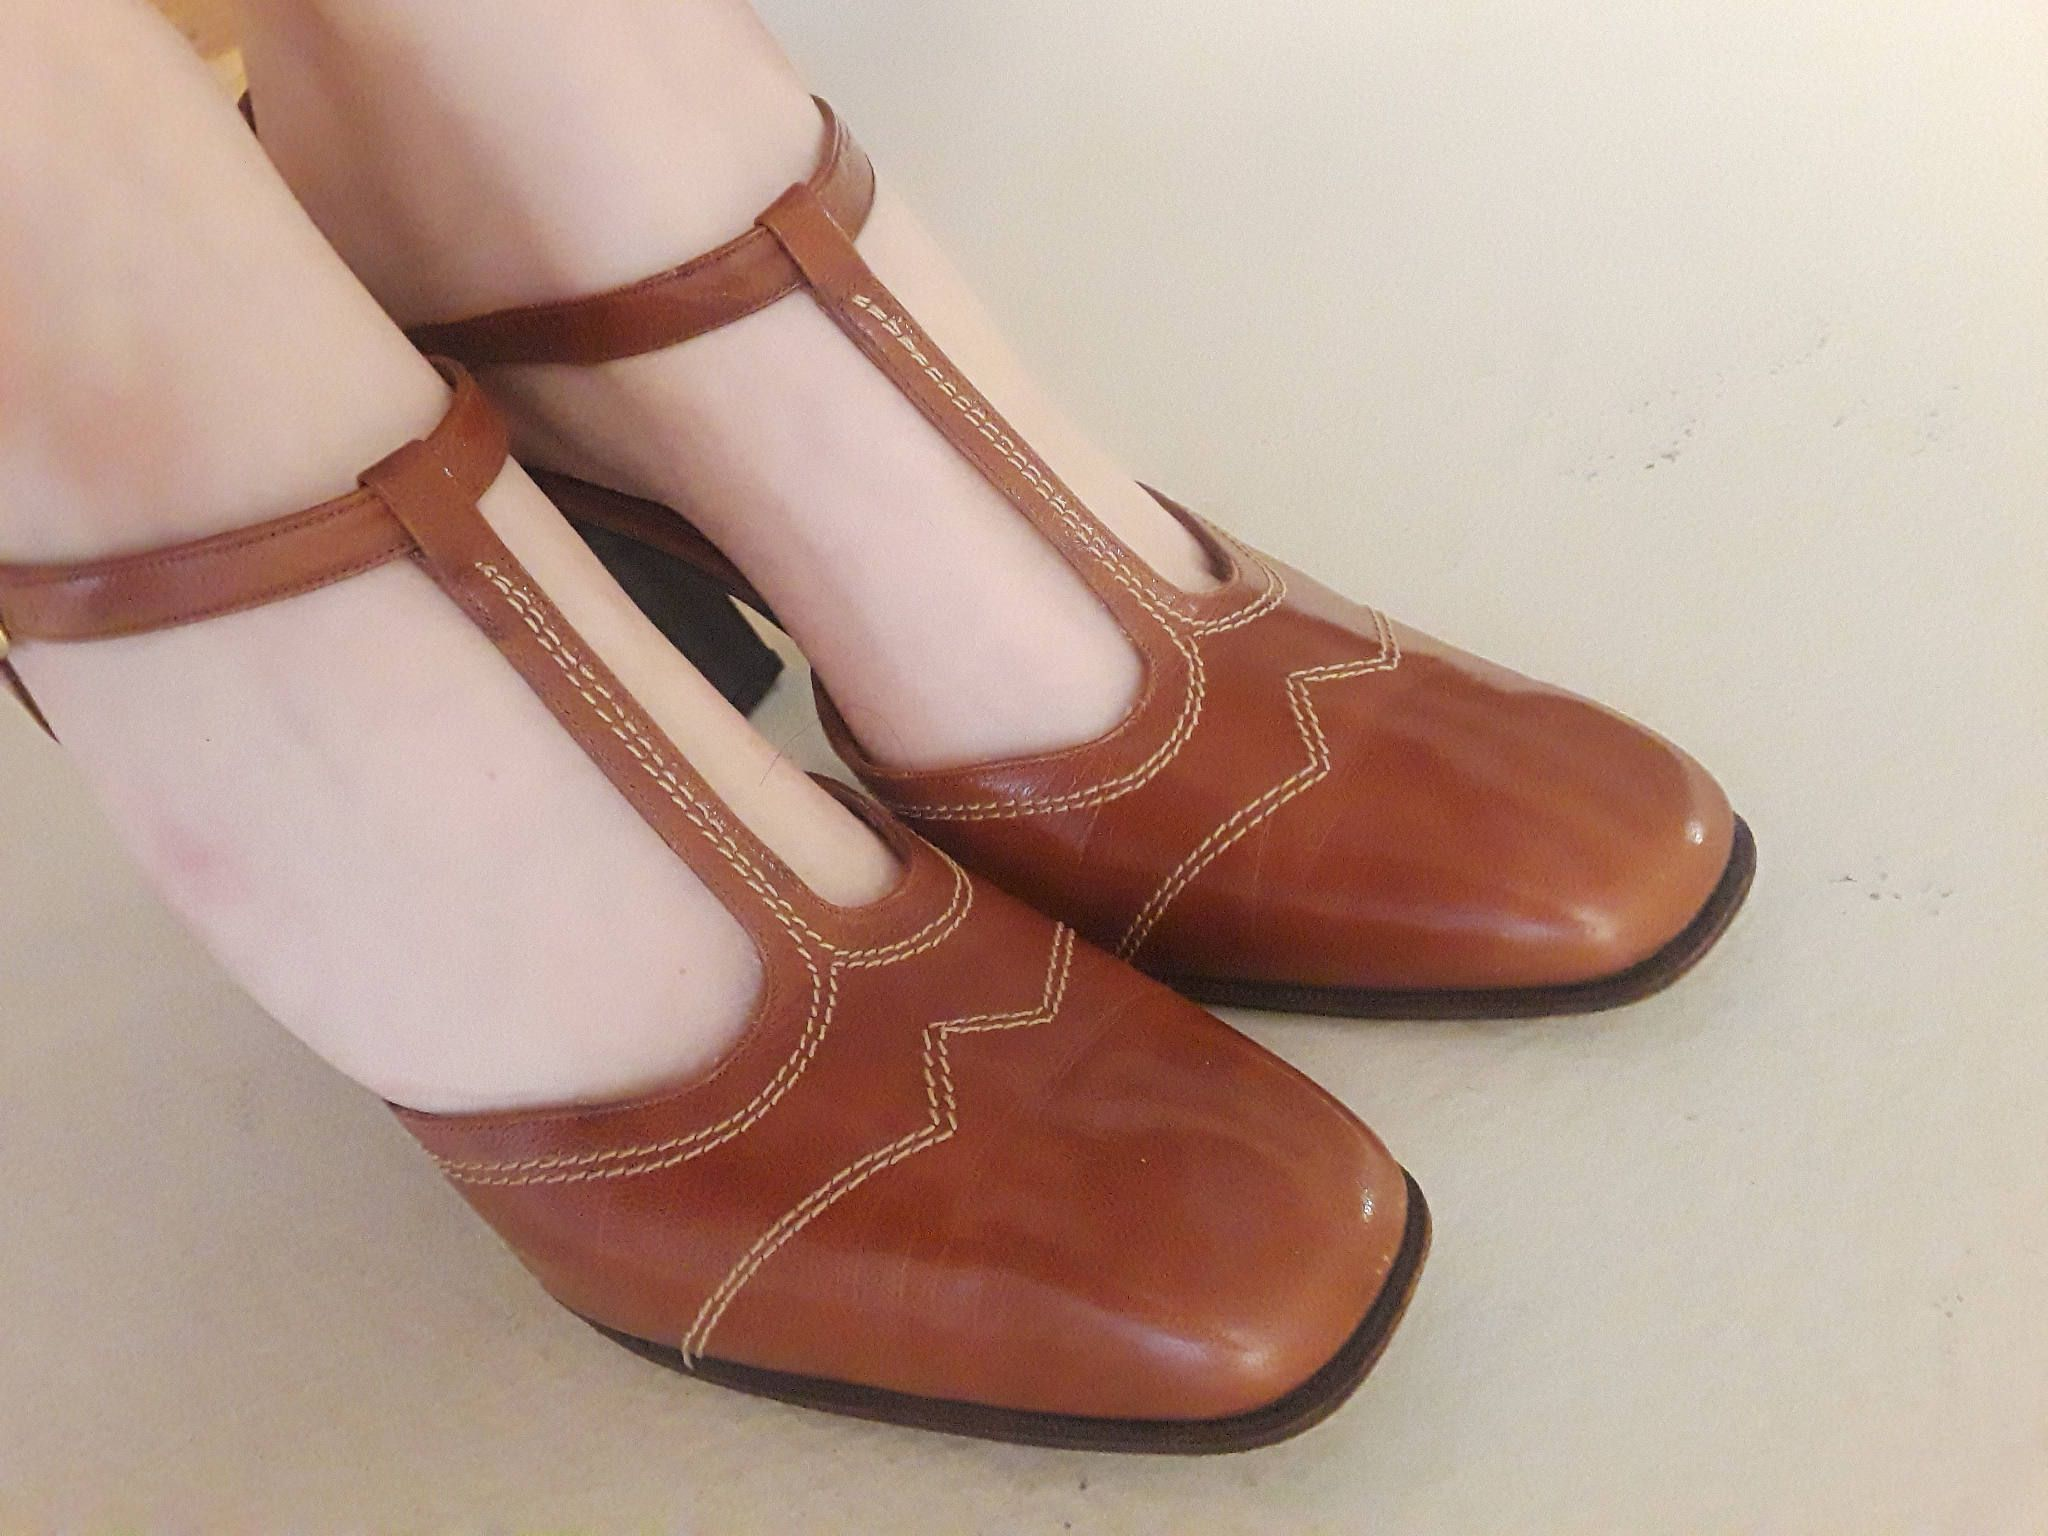 7daf8c560f16 Vintage 1970s Brown Leather T-Strap High Heel Shoes by Joseph   70s T Strap Shoes  with High Chunky Heel Vintage Secretary Office   9 1 2 by BasyaBerkman on  ...